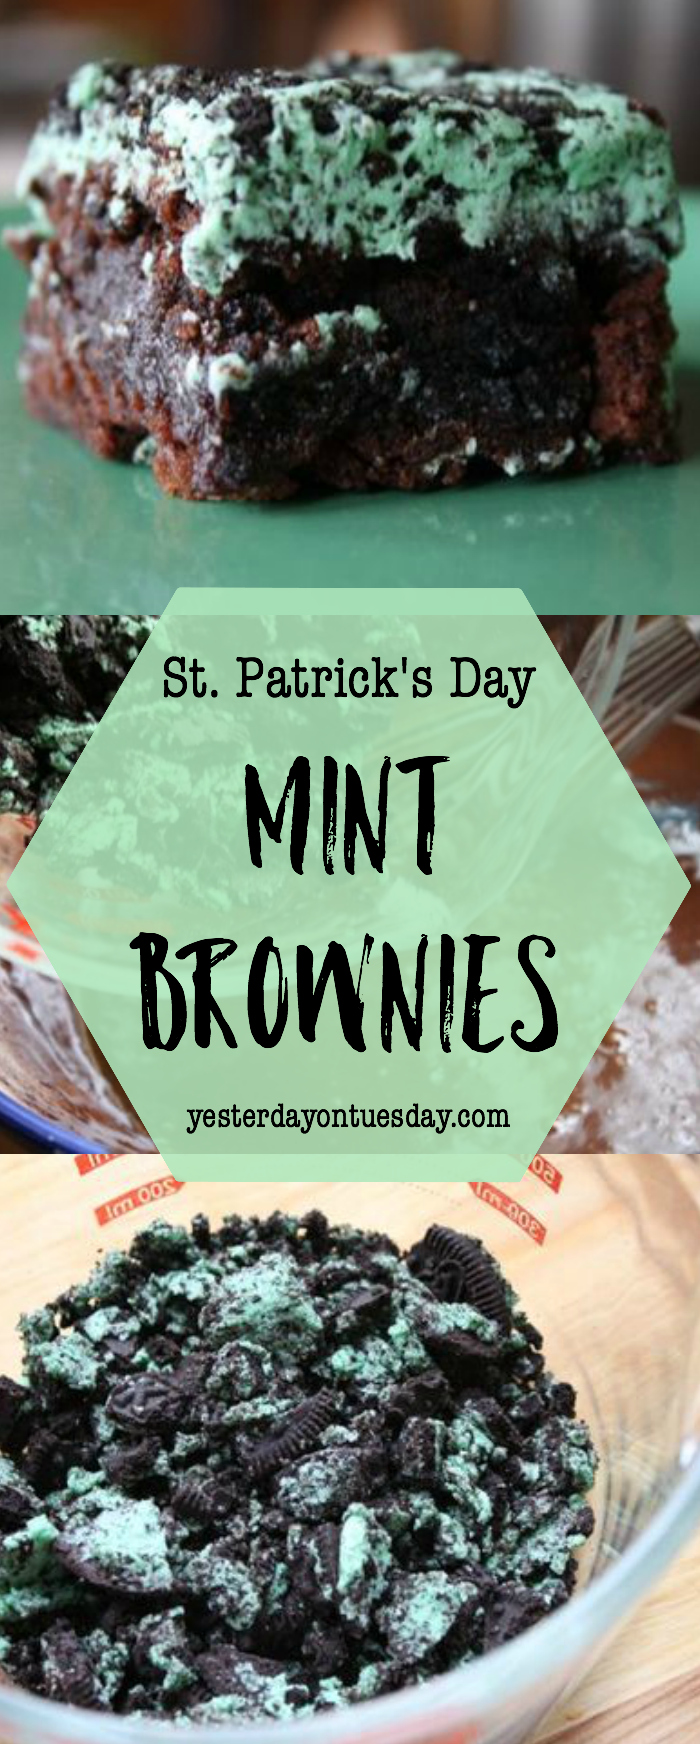 St. Patrick's Day Mint Brownies, an easy and delicious dessert for St. Pat's Day!